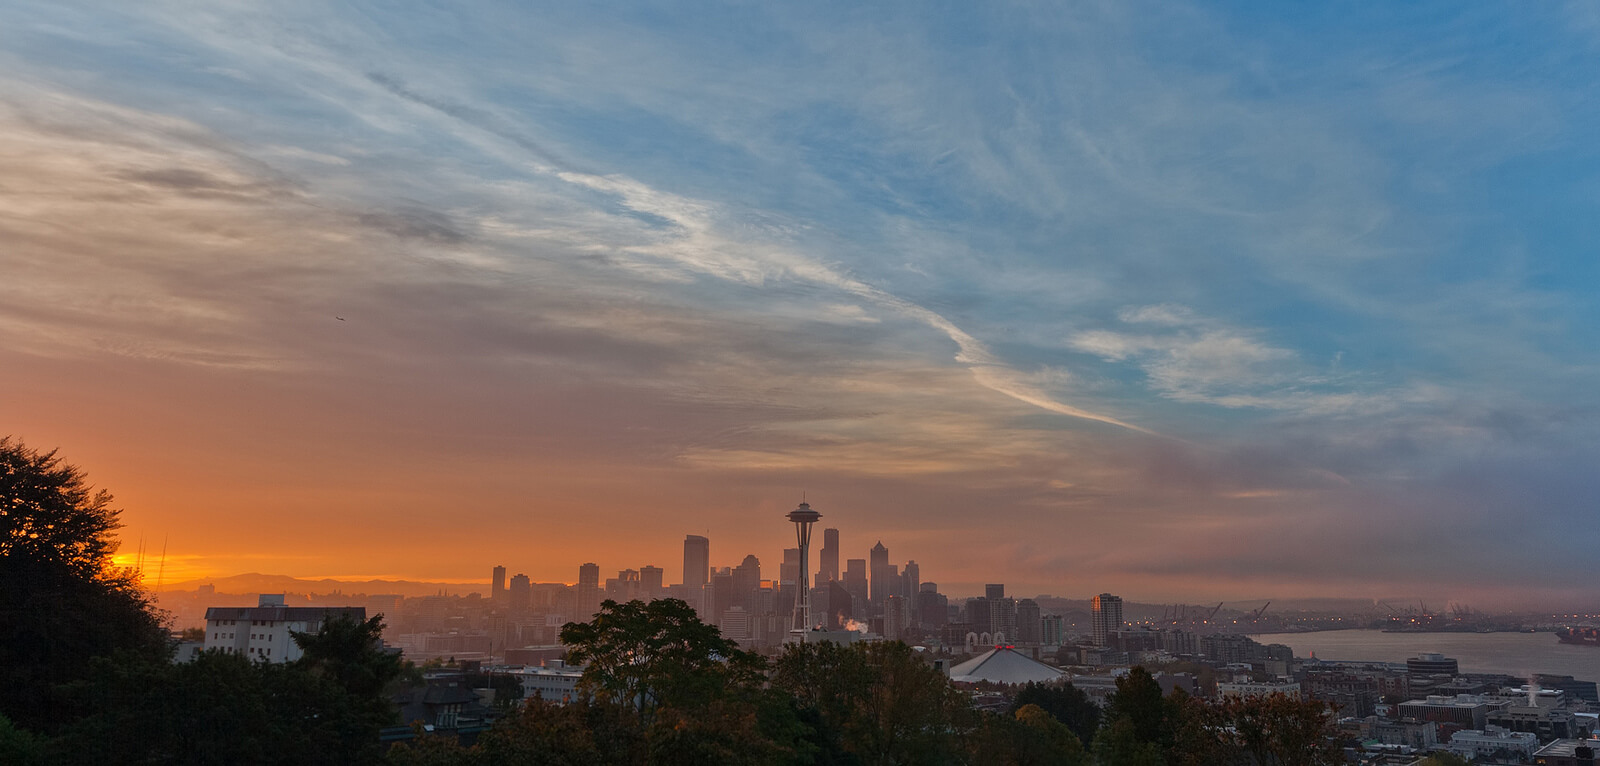 James Joel - Kerry Park